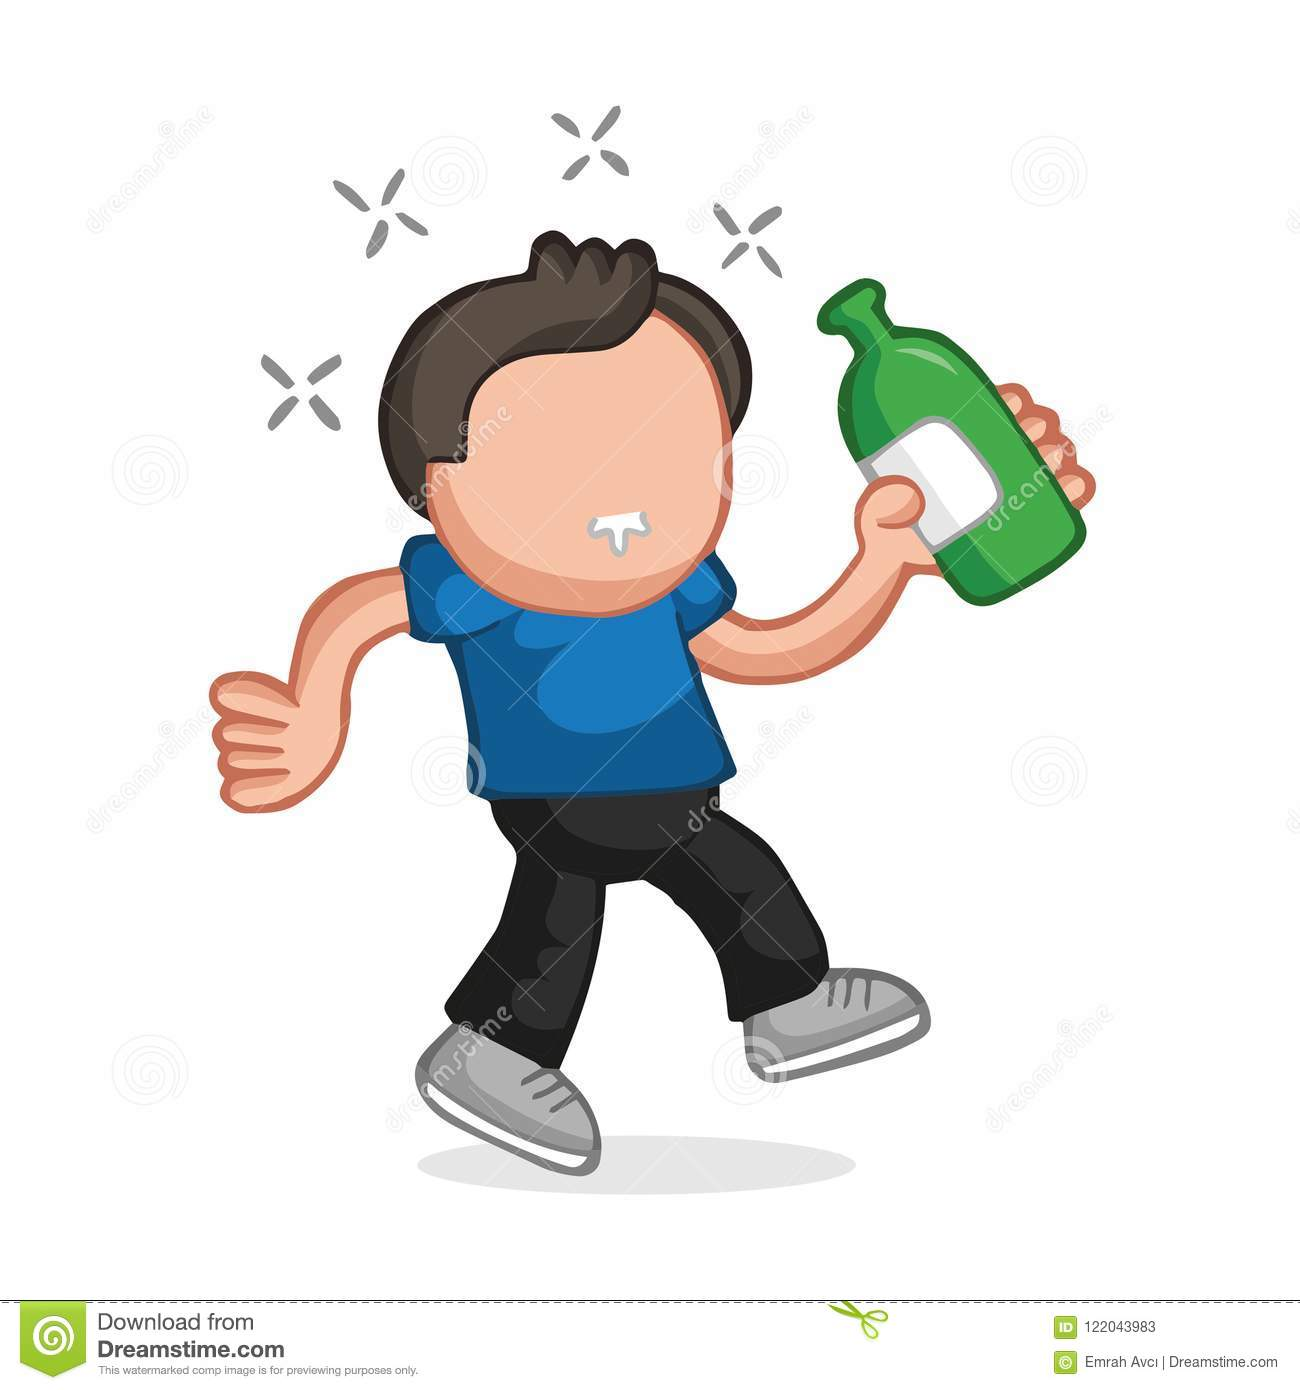 Vector Hand Drawn Cartoon Of Drunk Man Walking Holding Bottle Of